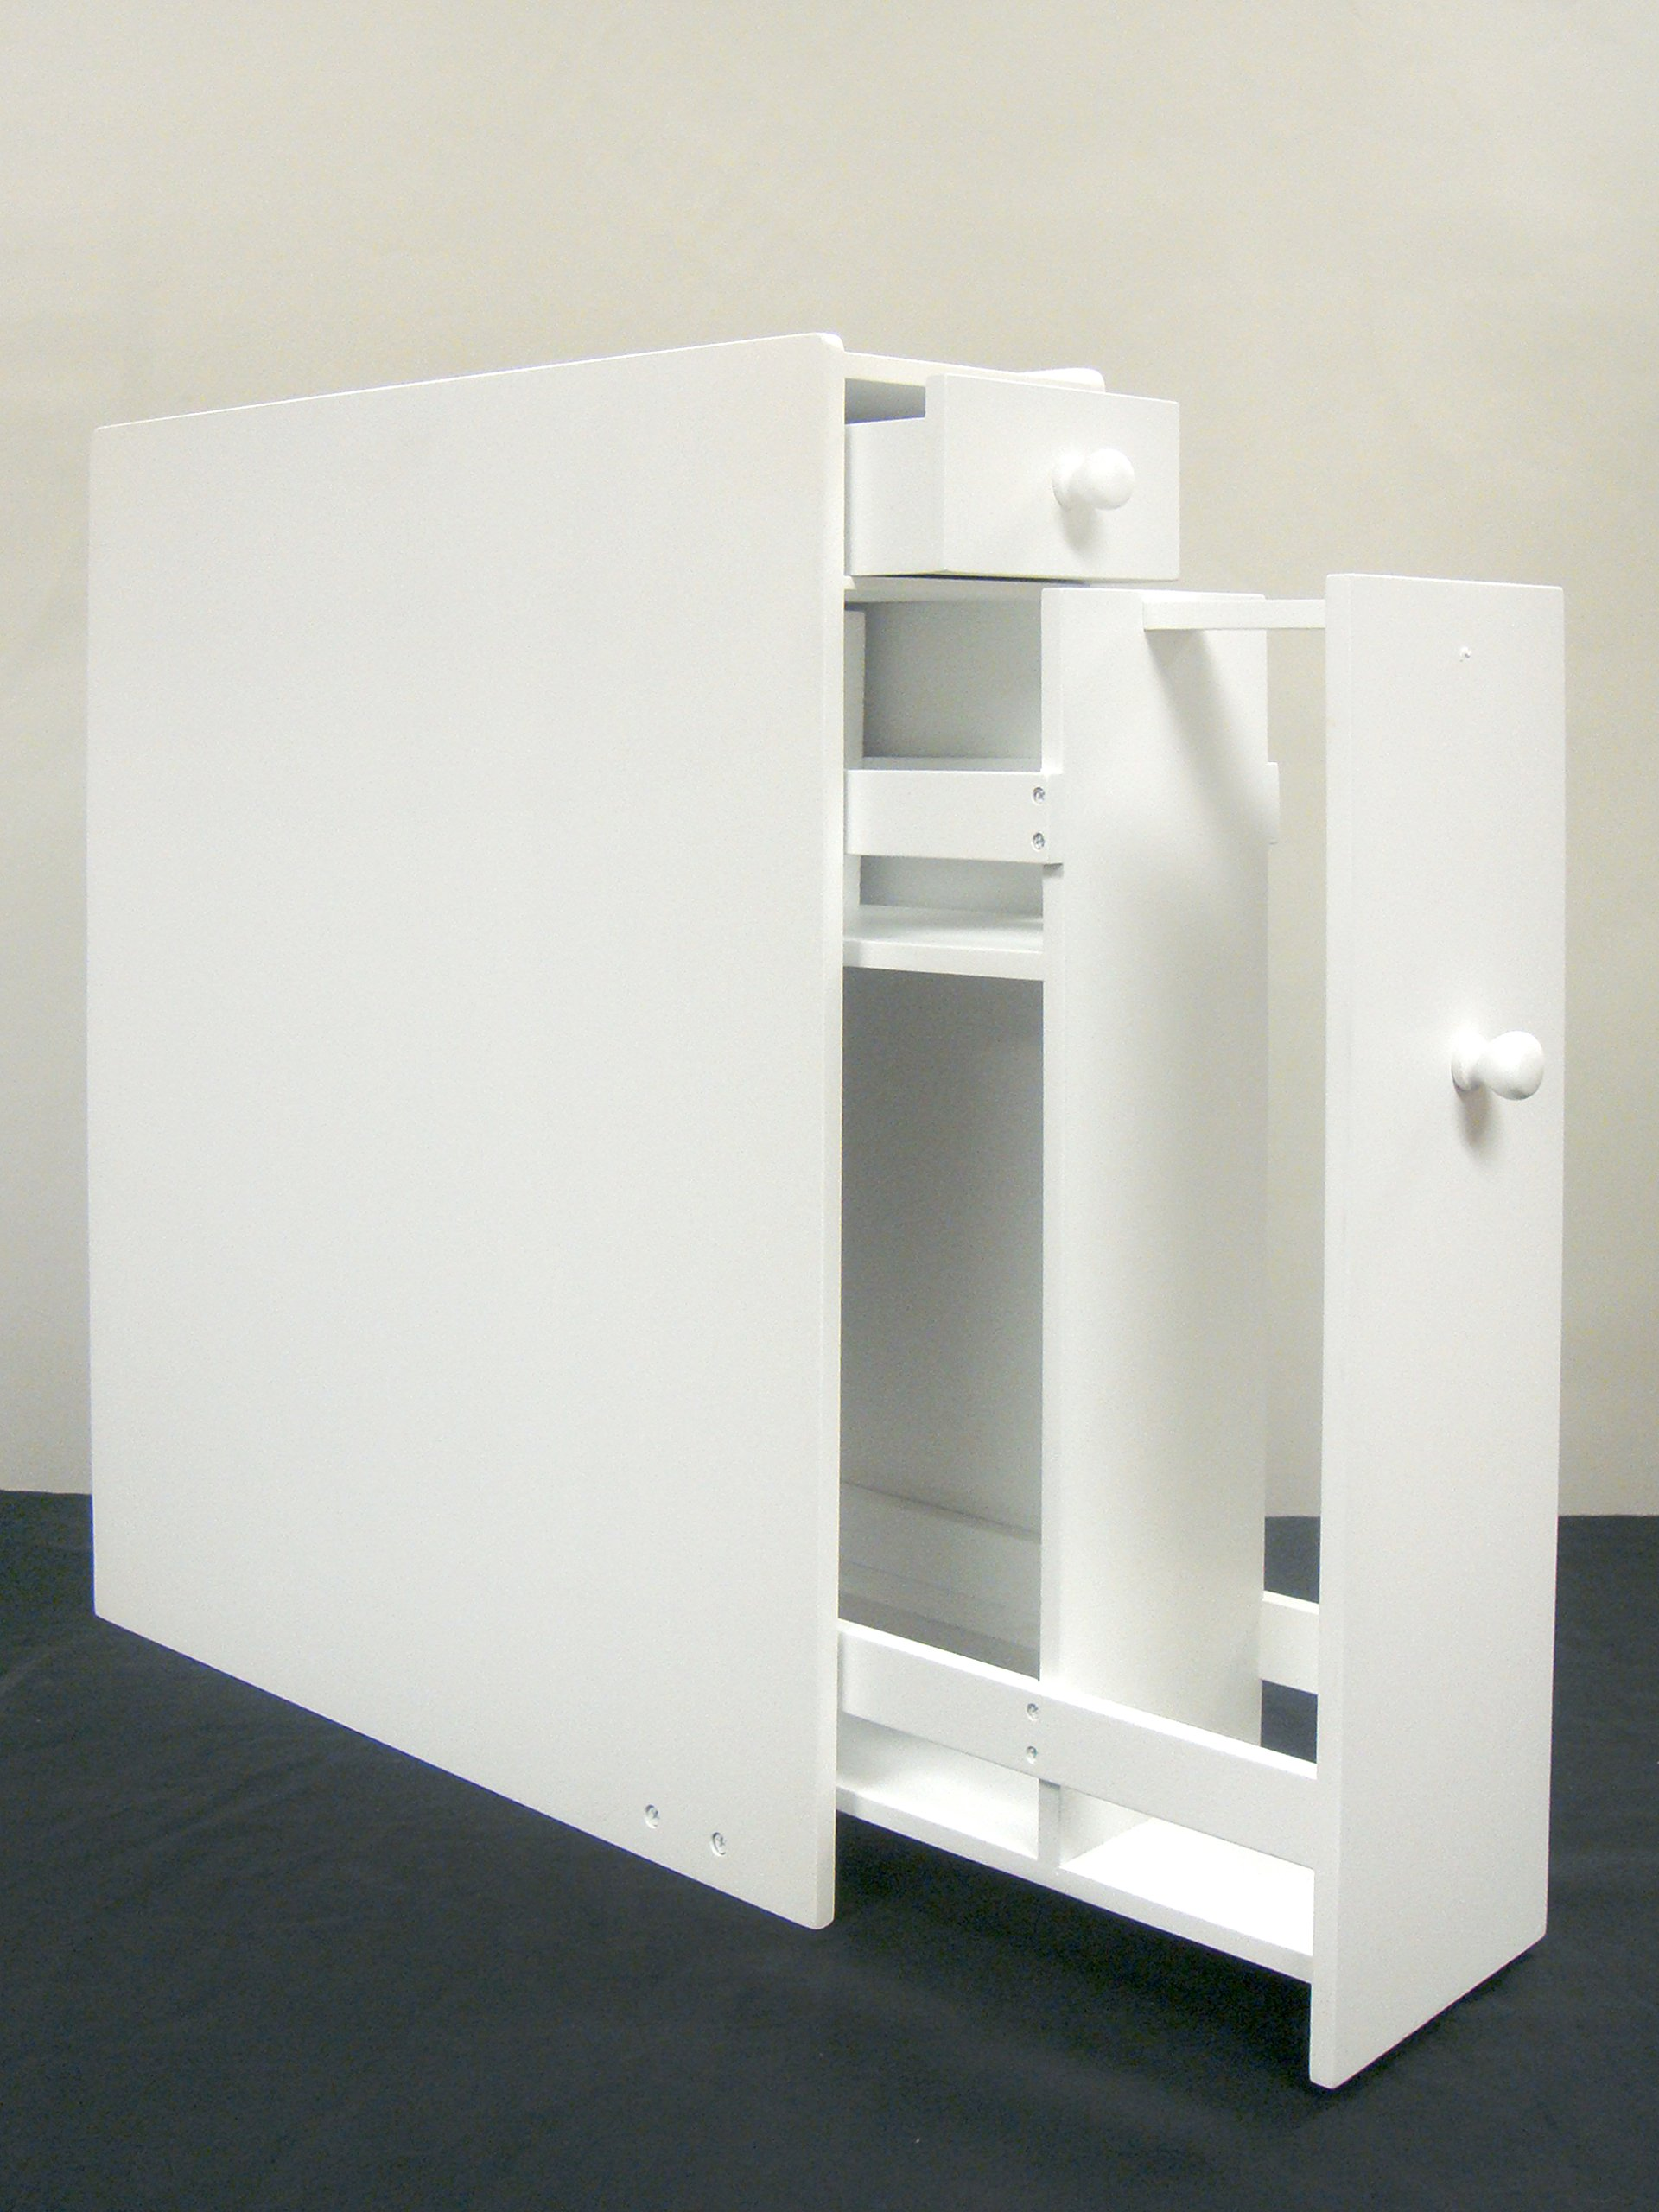 Proman Products Bathroom Floor Cabinet Wood in Pure White by Proman Products (Image #7)